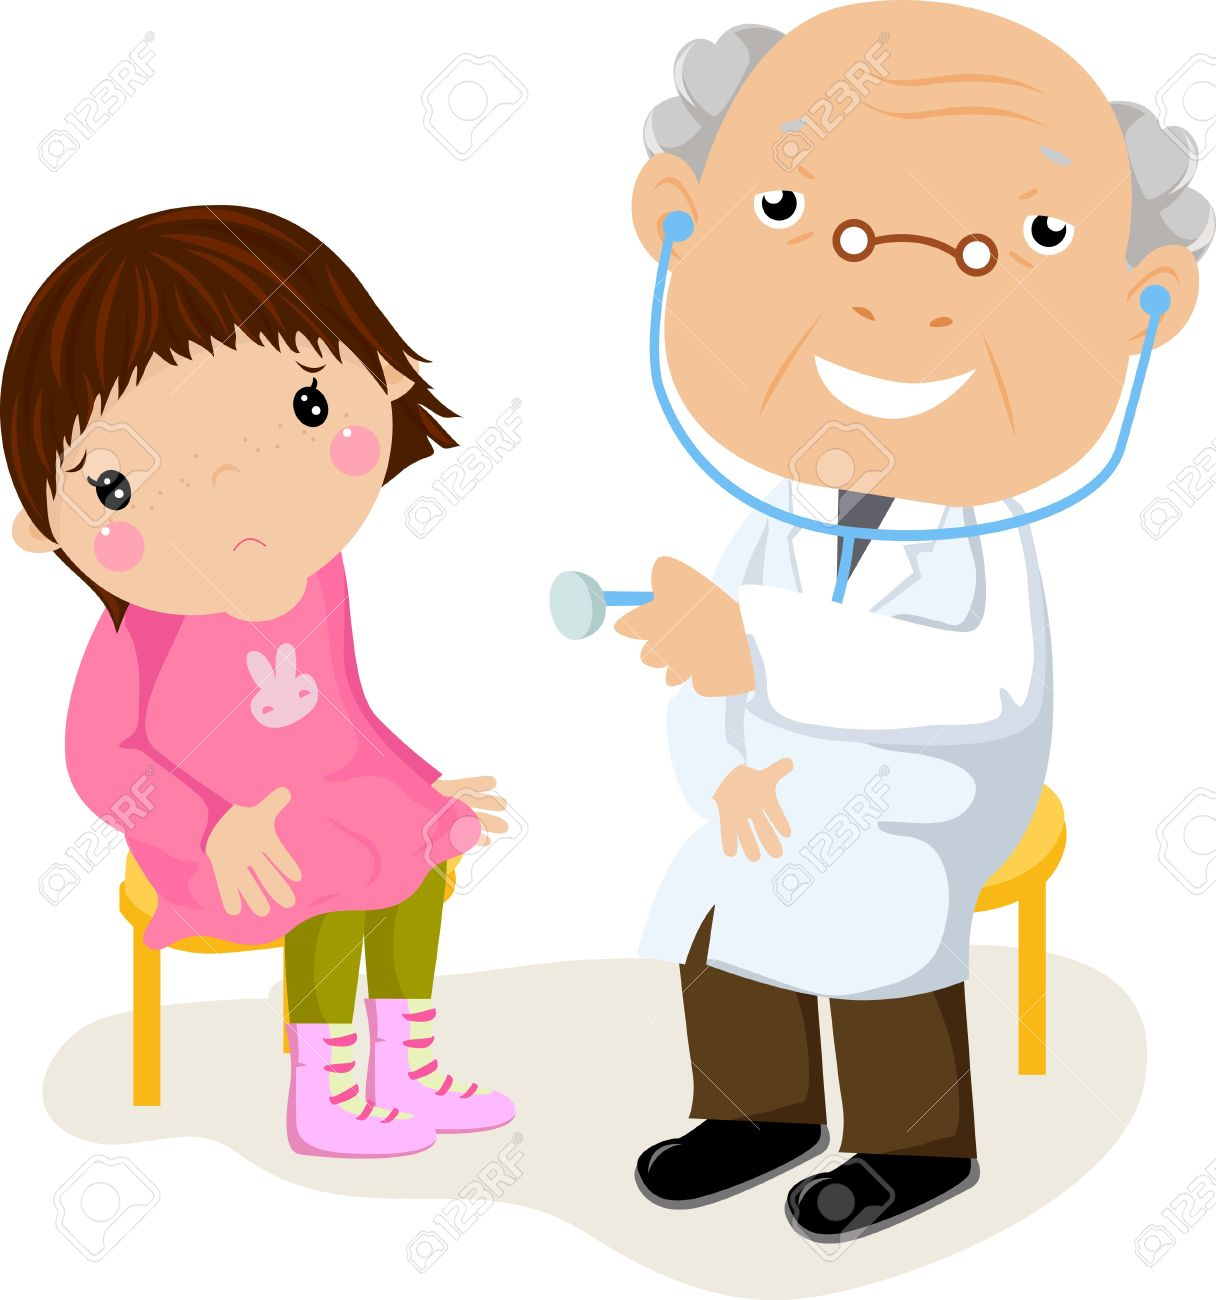 Doctor And Child Patient Clipart.